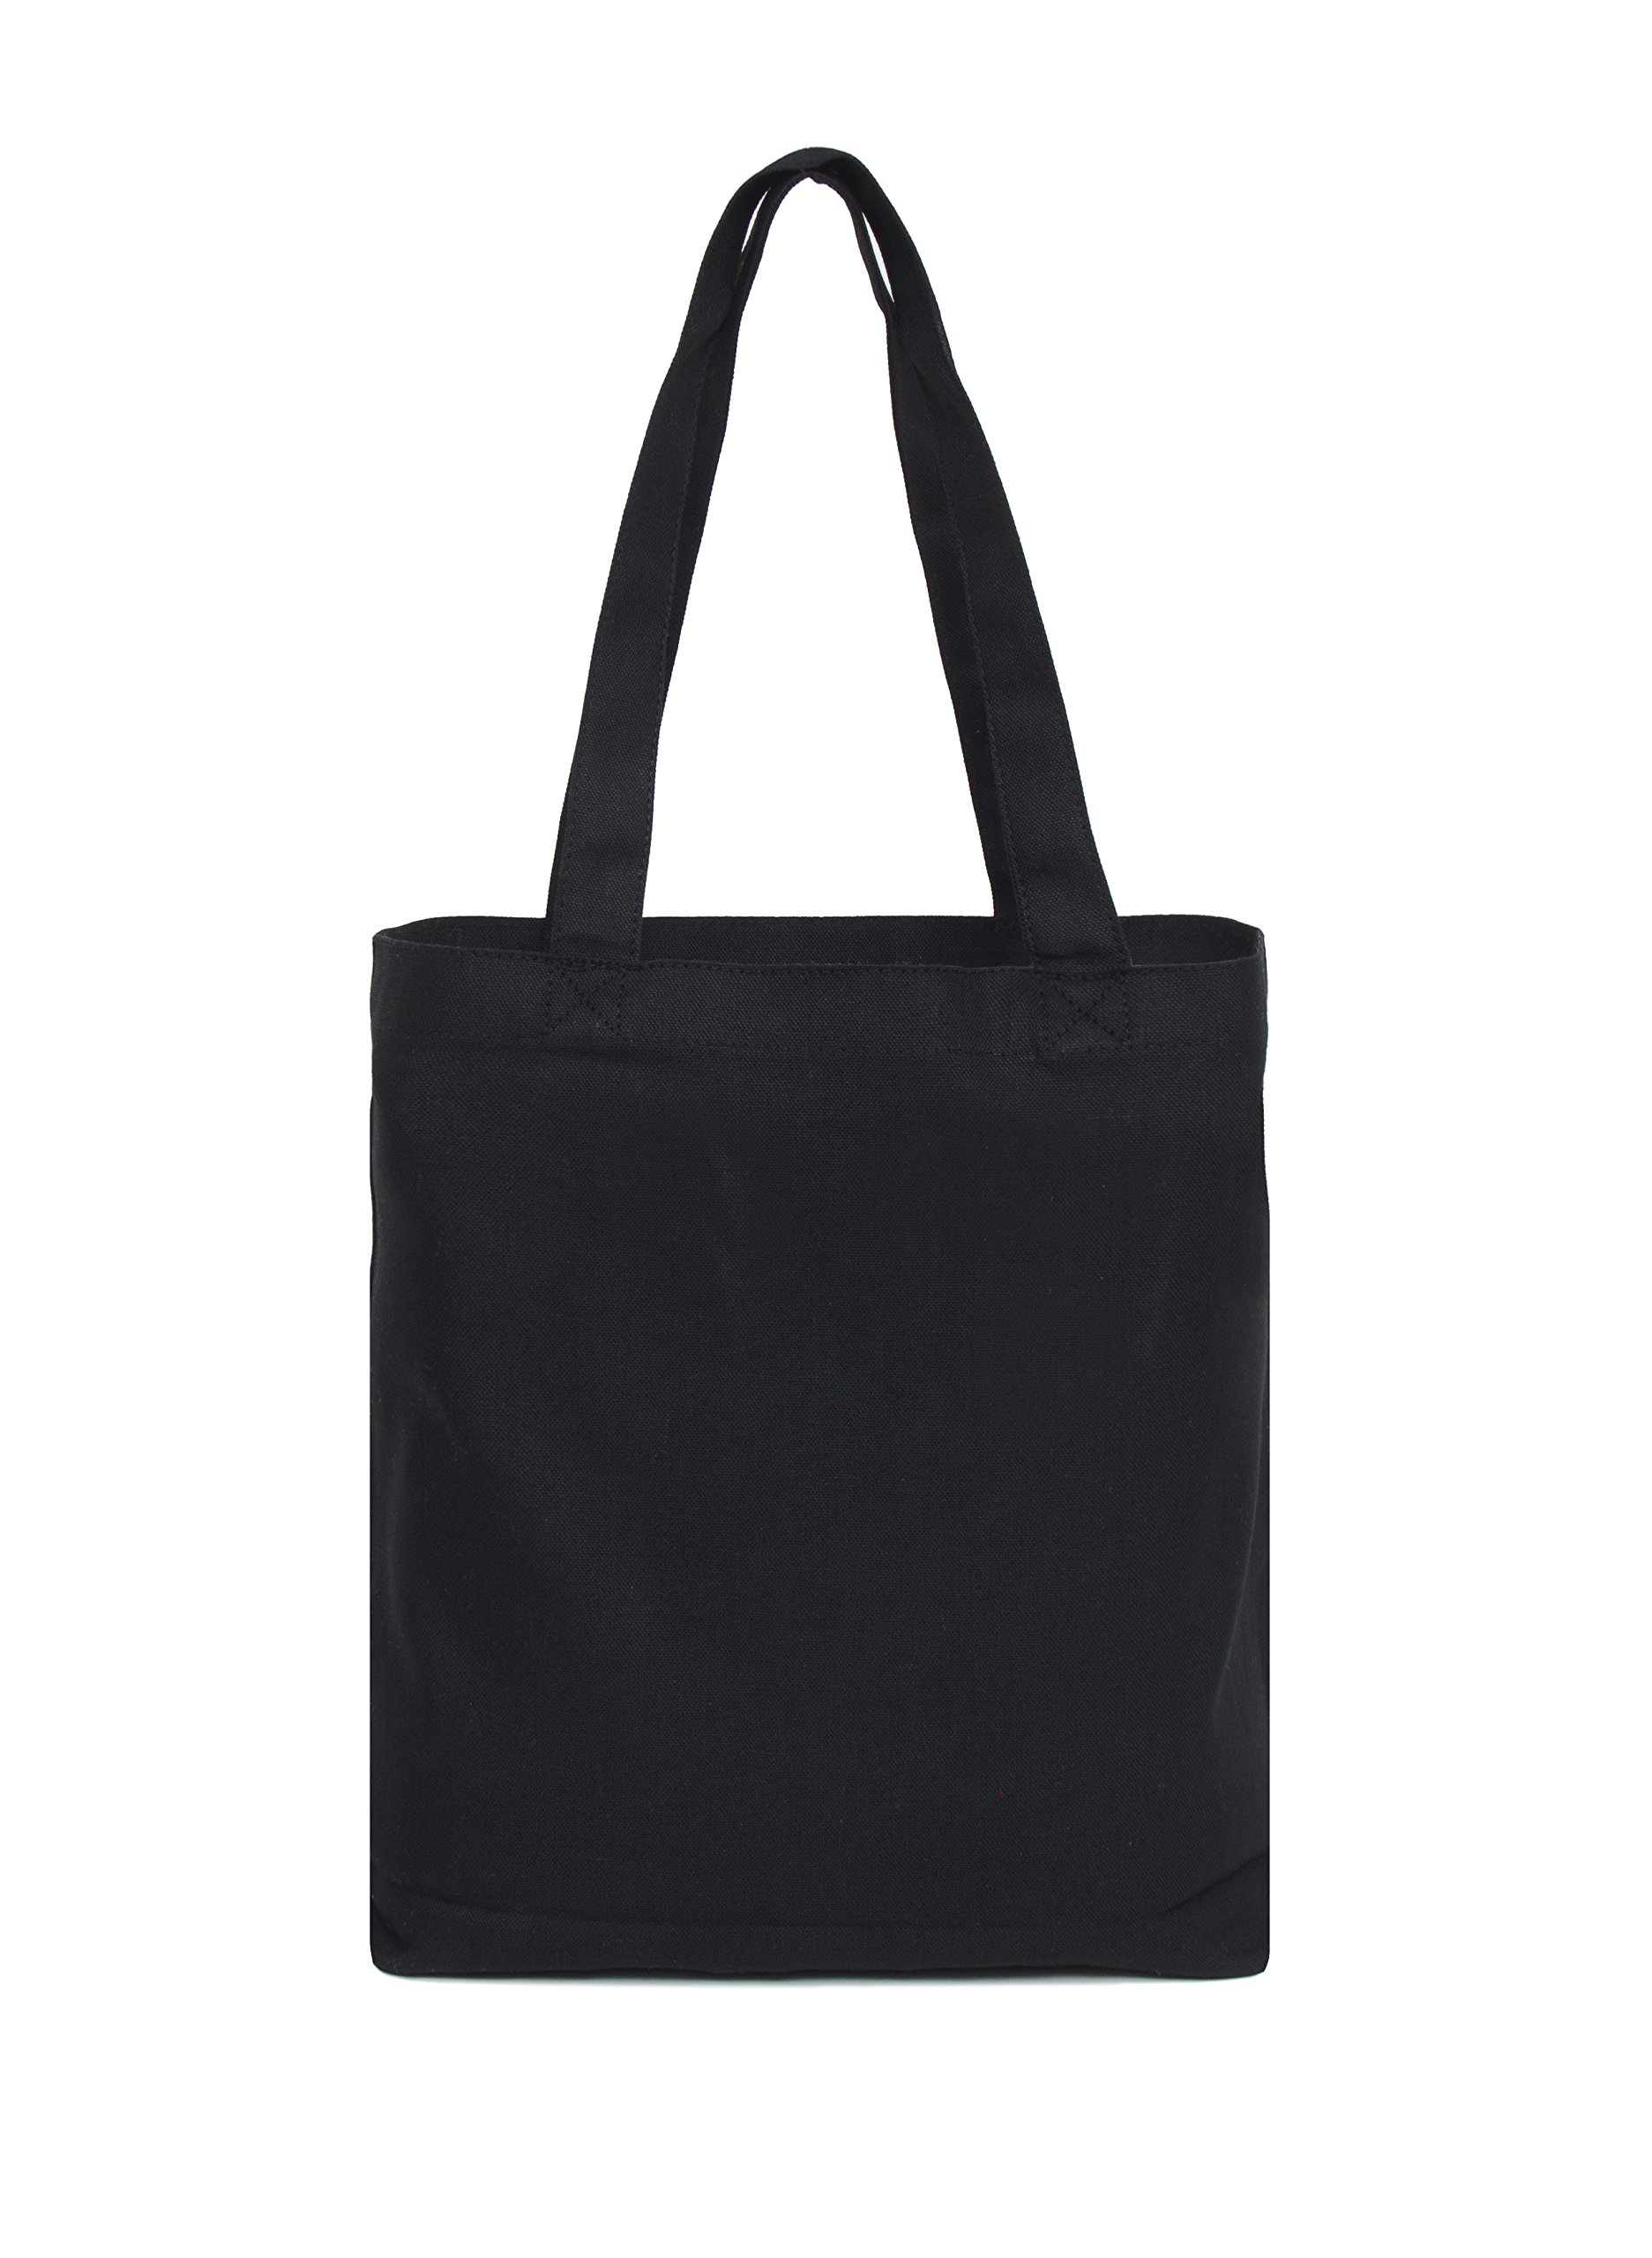 Set of 12 - Medium Tote Bag 14x13x3'', Black, 100% Cotton Canvas by Bumble Crafts (Image #2)